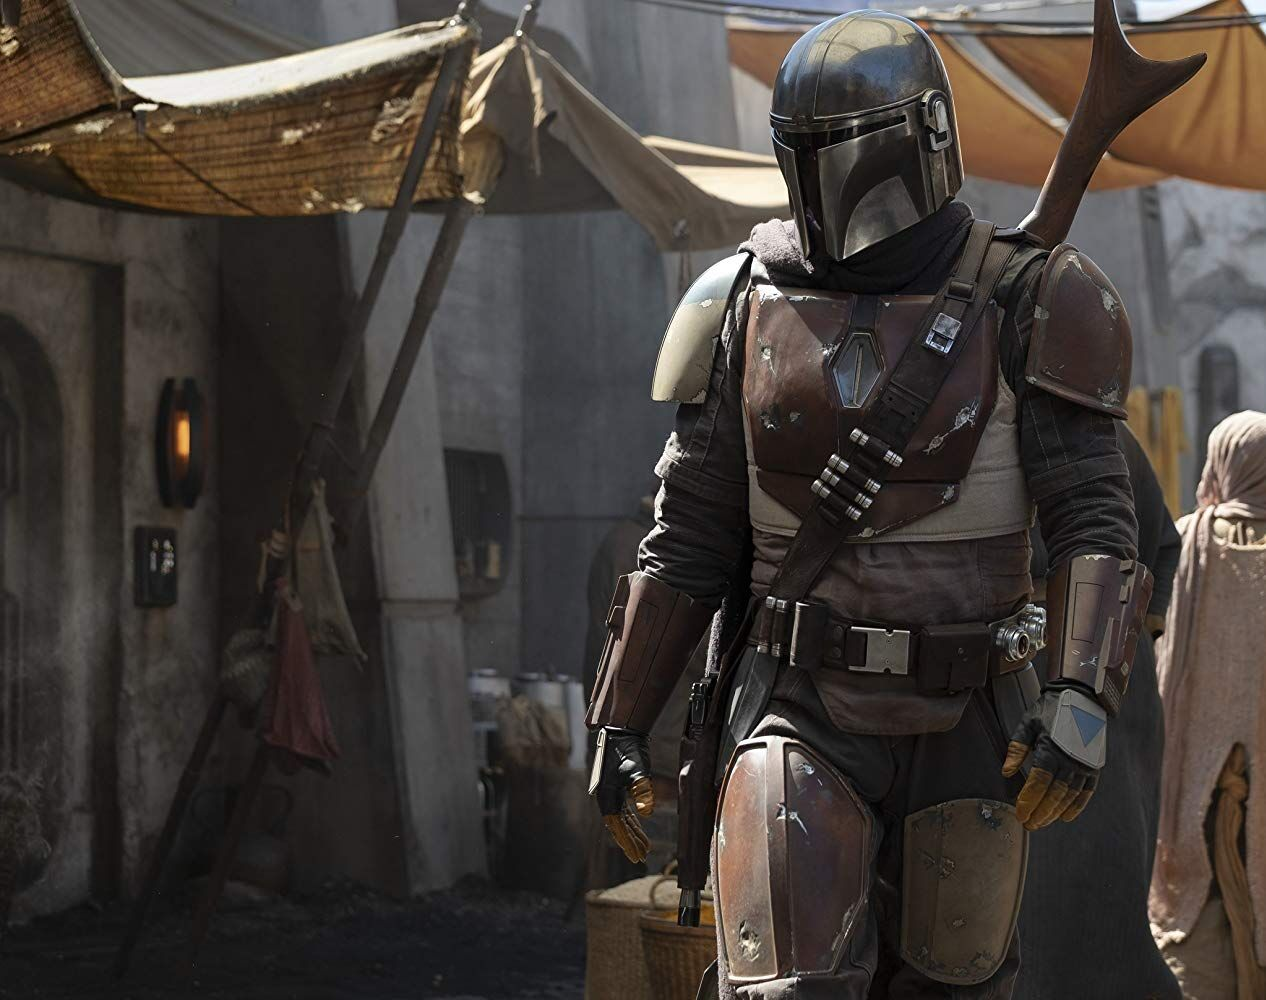 The first reviews of The Mandalorian are overwhelmingly positive